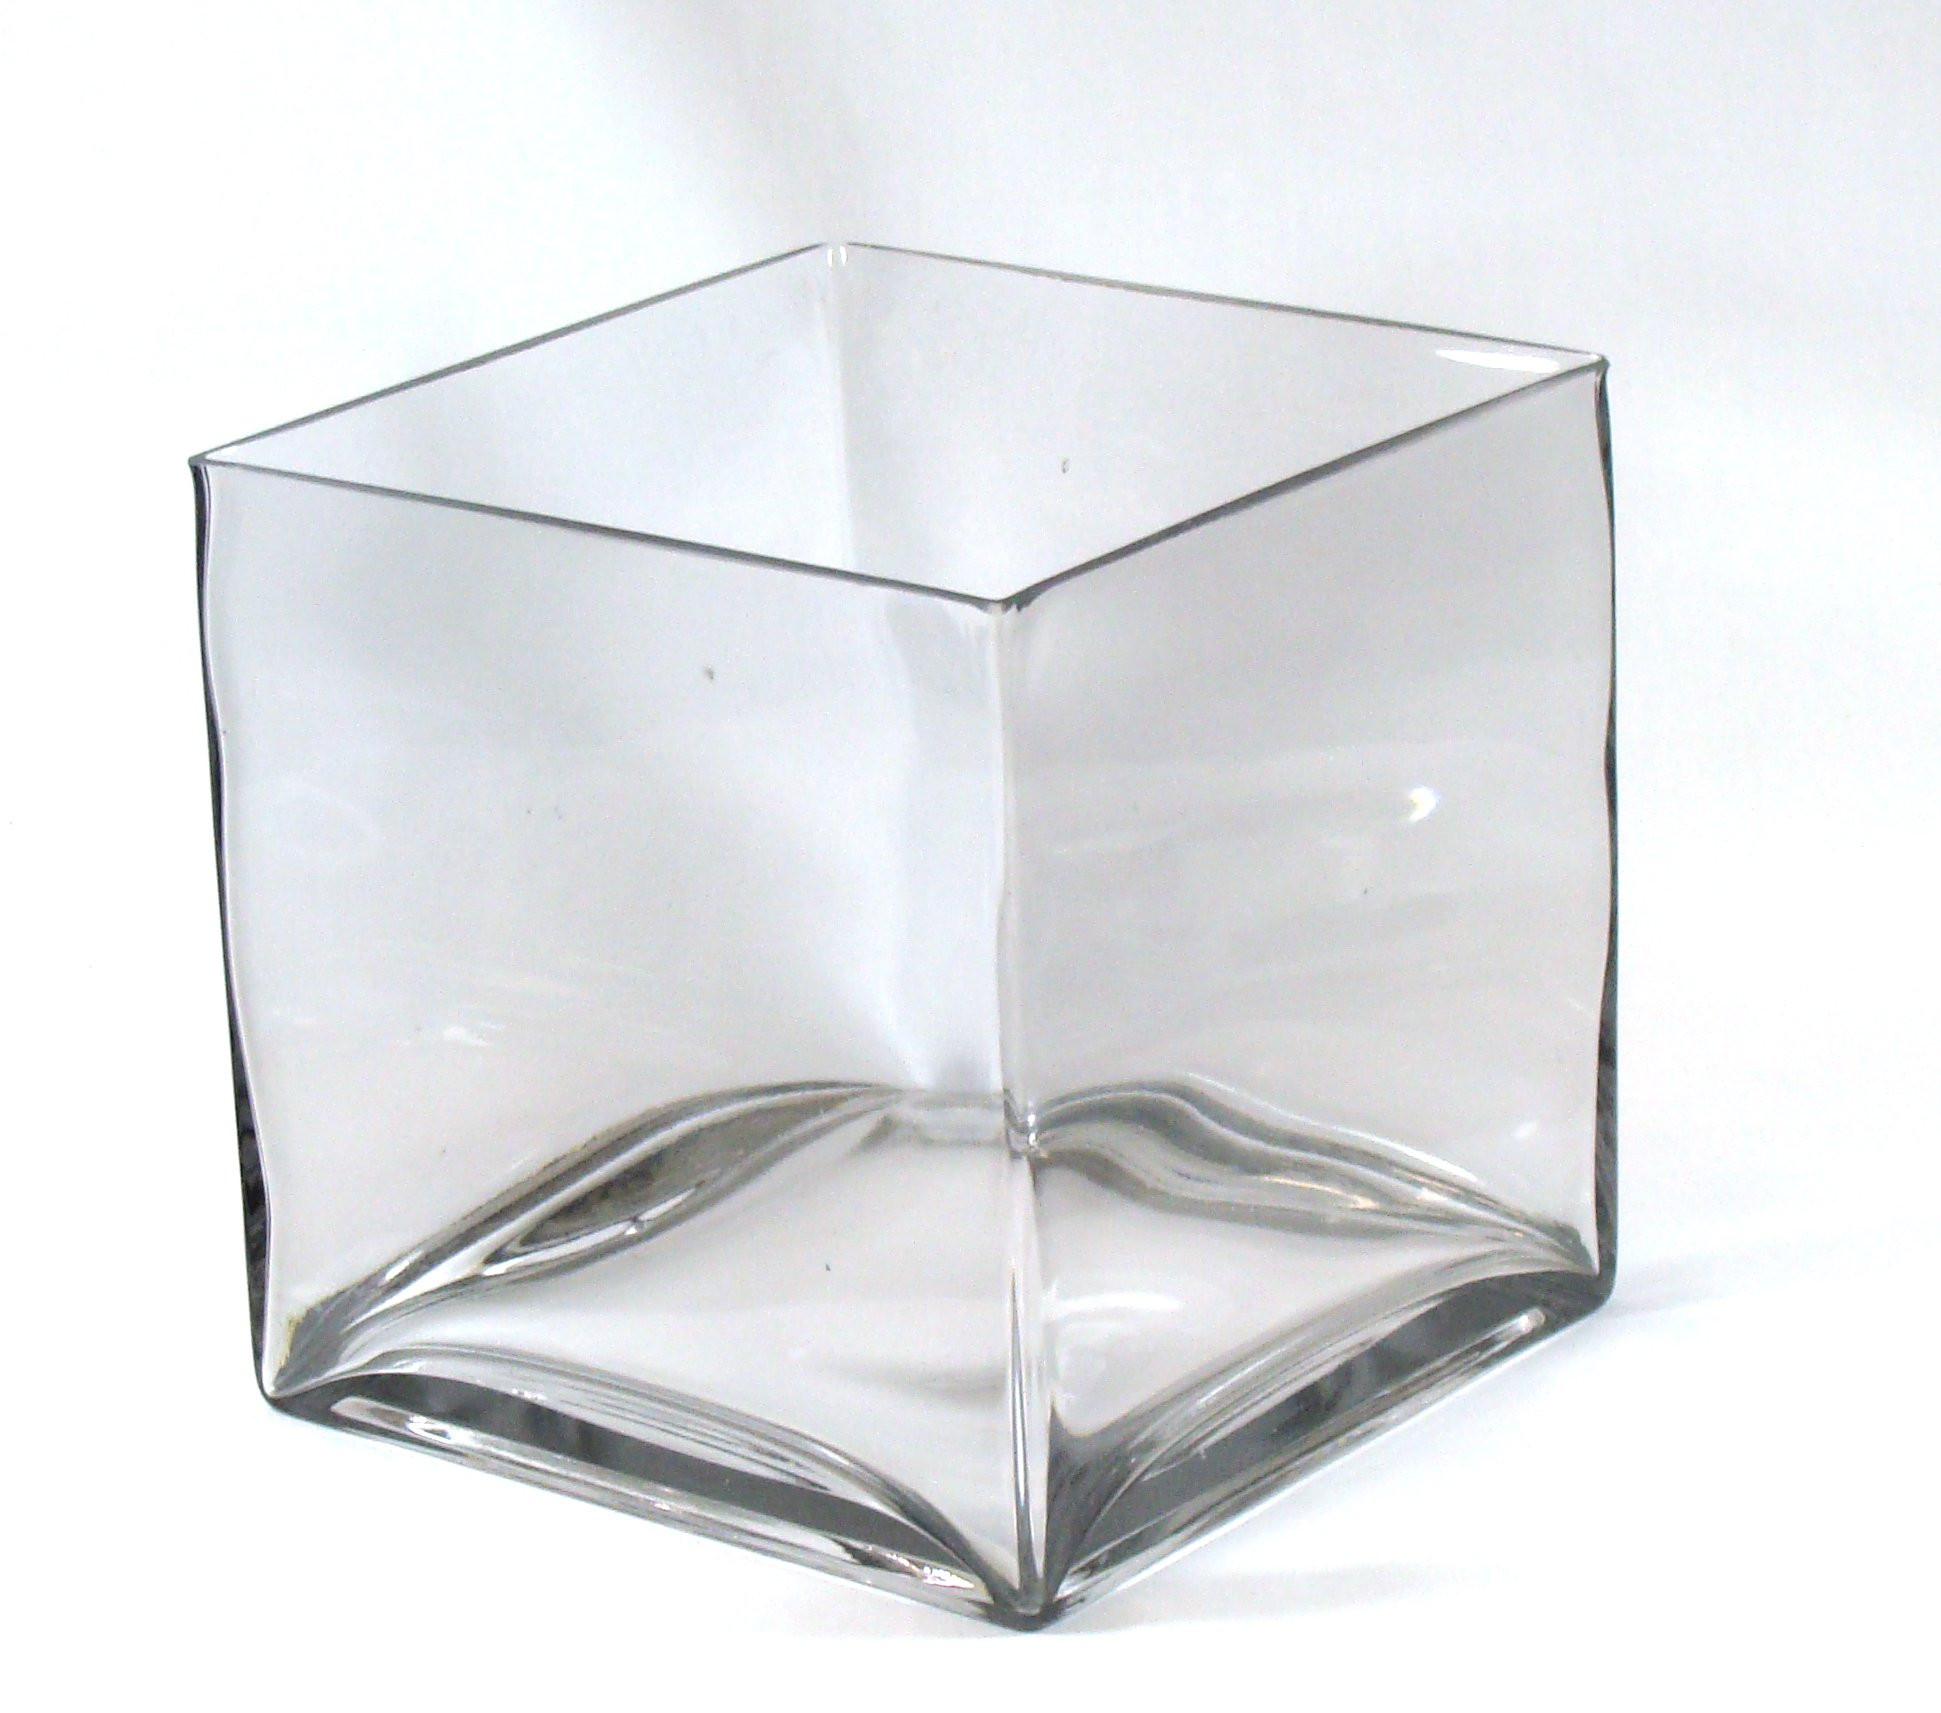 extra large round glass vase of buy 8 inch round large glass vase 8 clear cylinder oversize for 8 square large glass vase 8 inch clear cube oversize centerpiece 8x8x8 candleholder